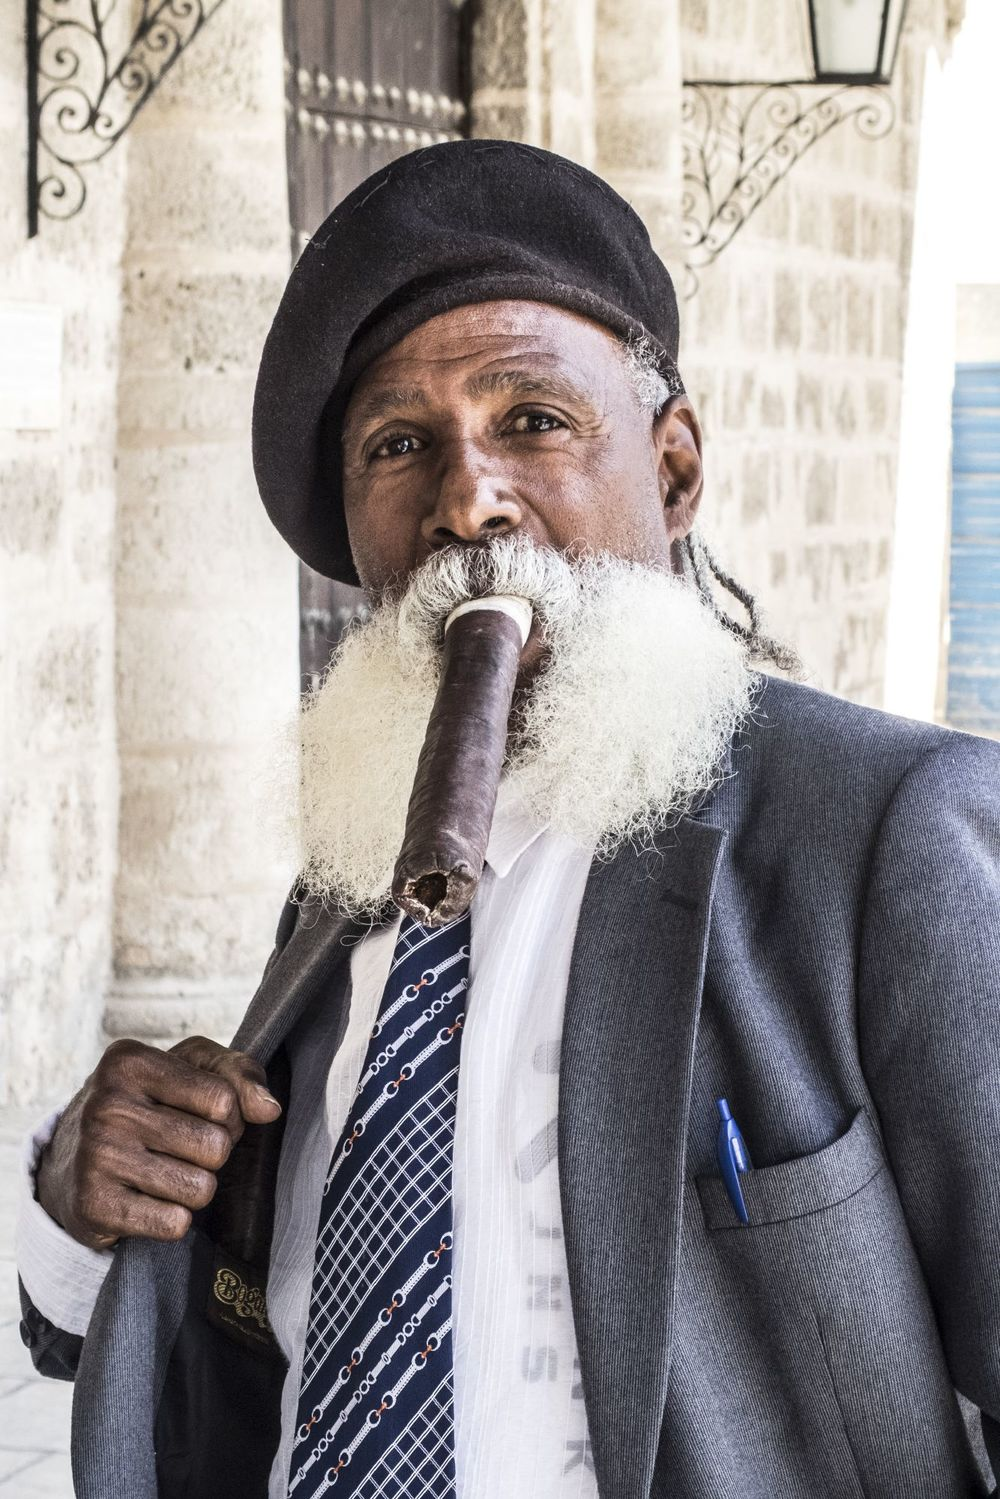 portrait-cuba-cigar-man-michael-benabib-travel-photography.JPG